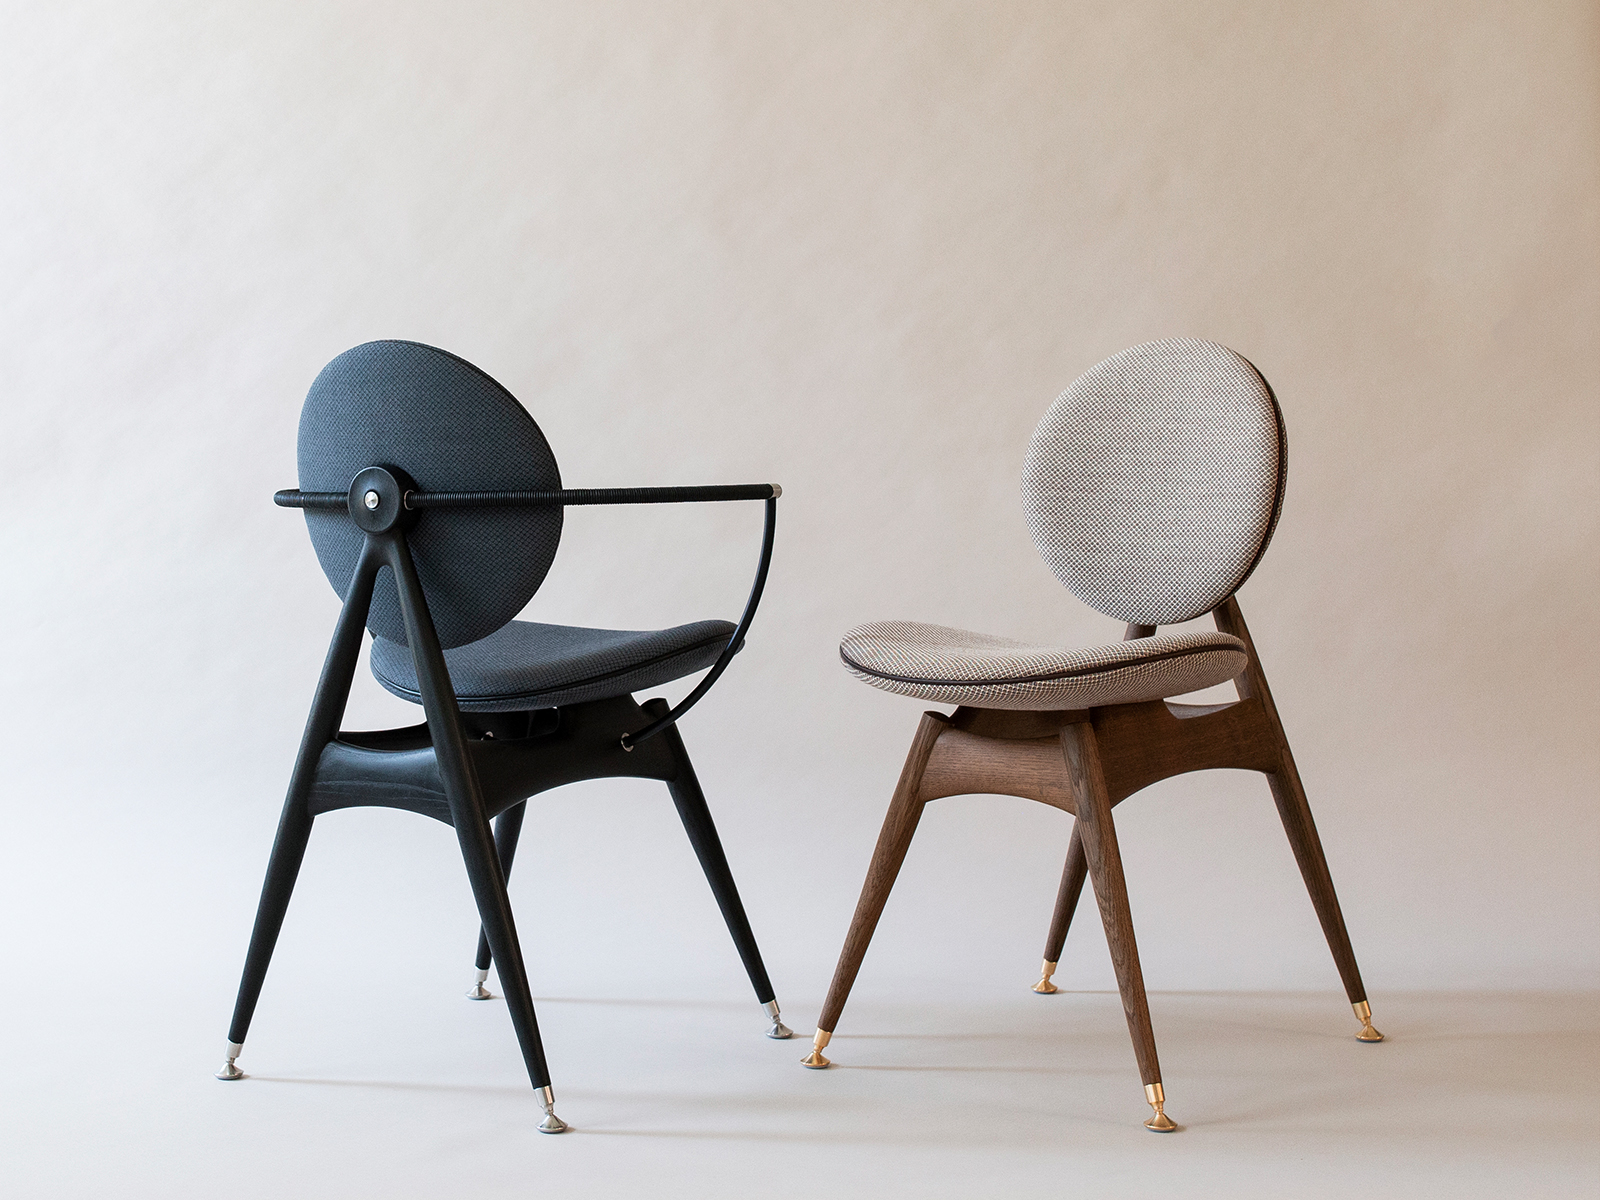 circle dining chairs with and without armrest